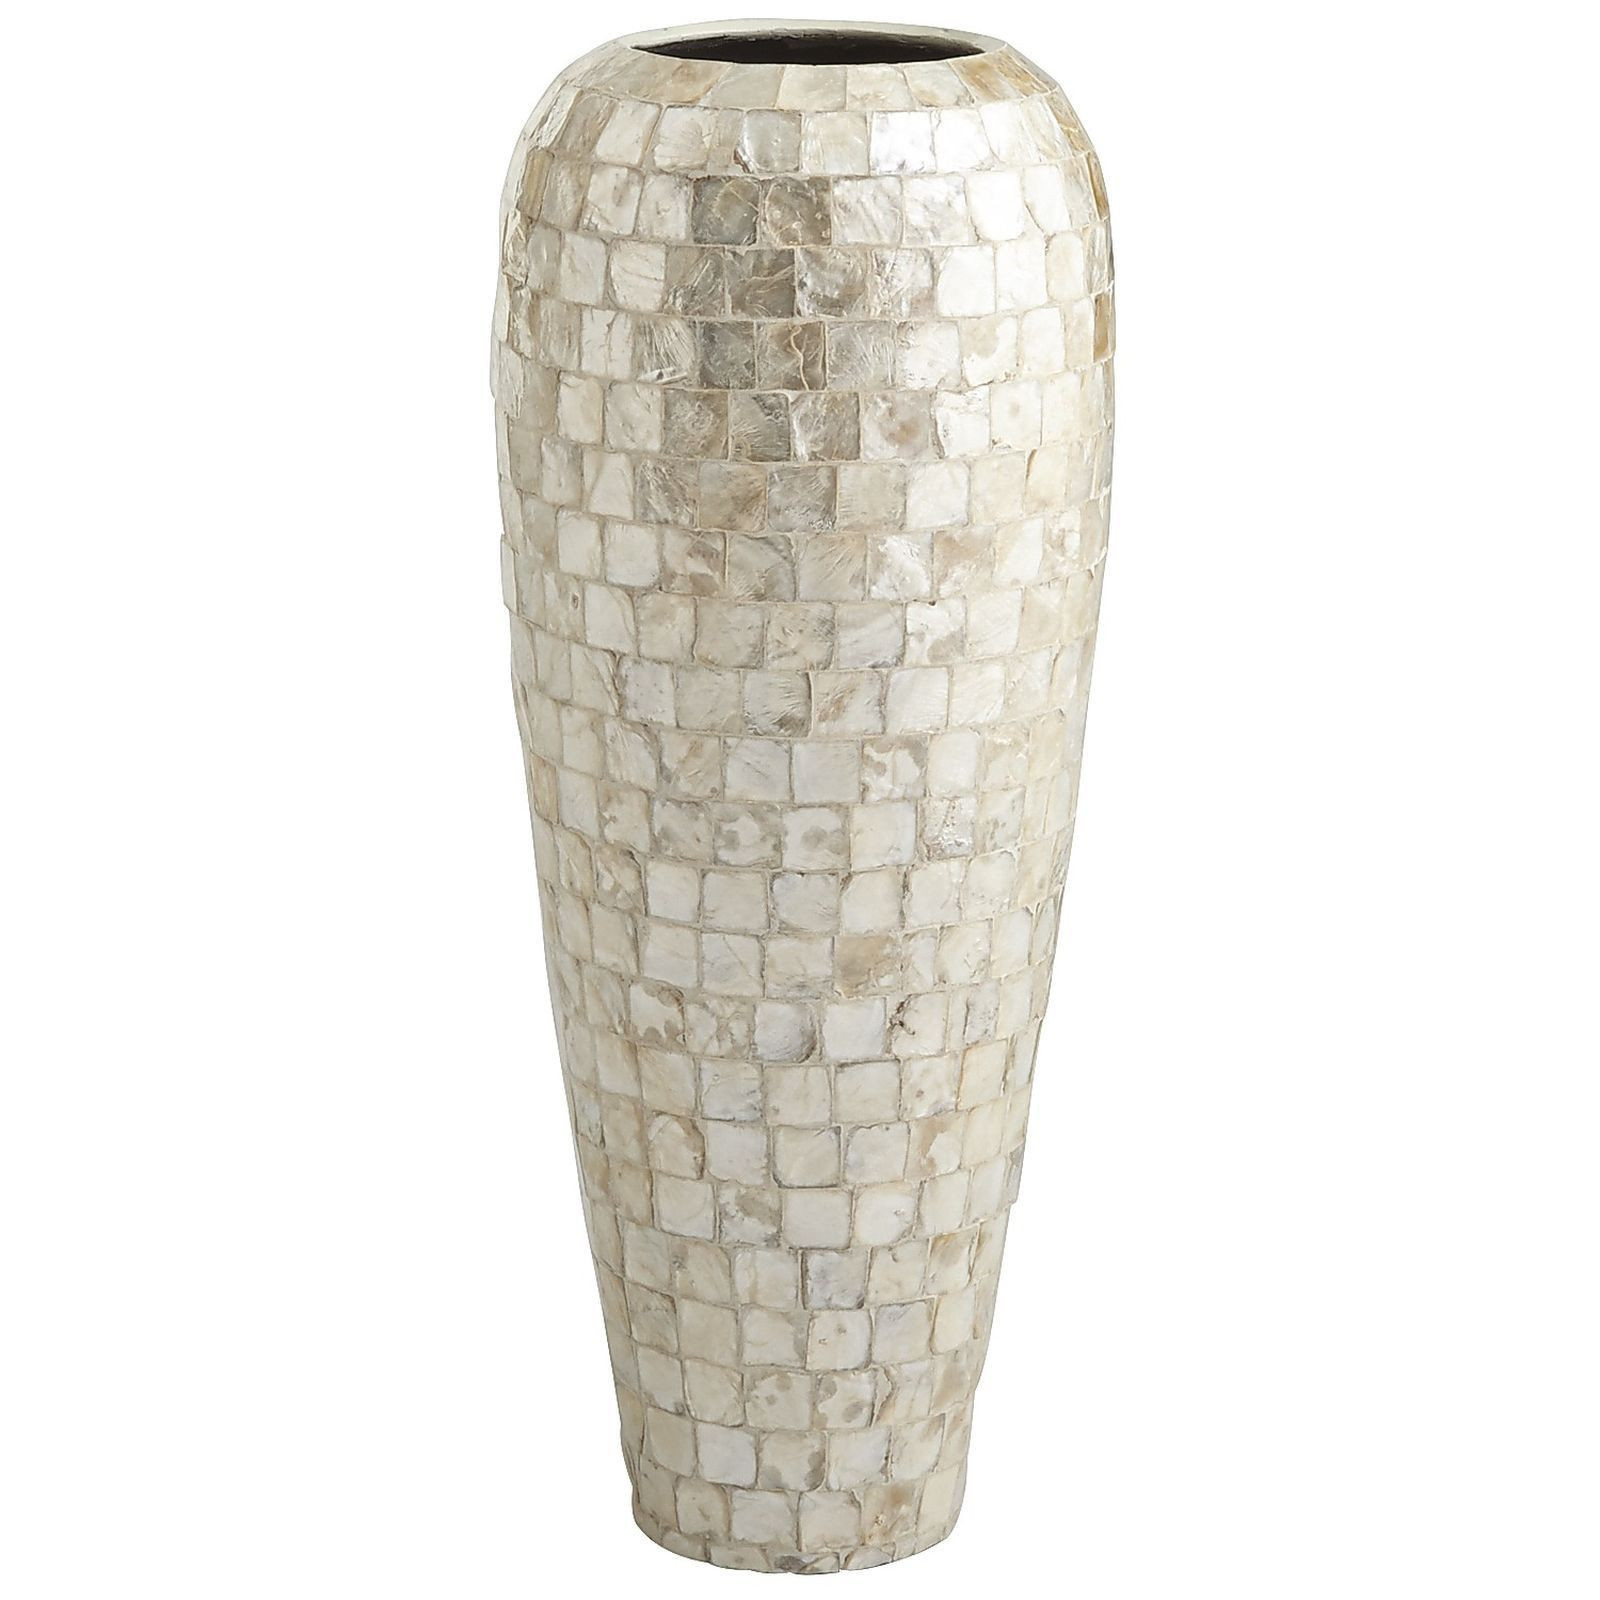 pier one owl vase of pier 1 vases collection pier 1 imports short mother pearl vase 35 a¢ throughout pier 1 vases stock 48 pier 1 good thing capiz is naturally abundant there are so